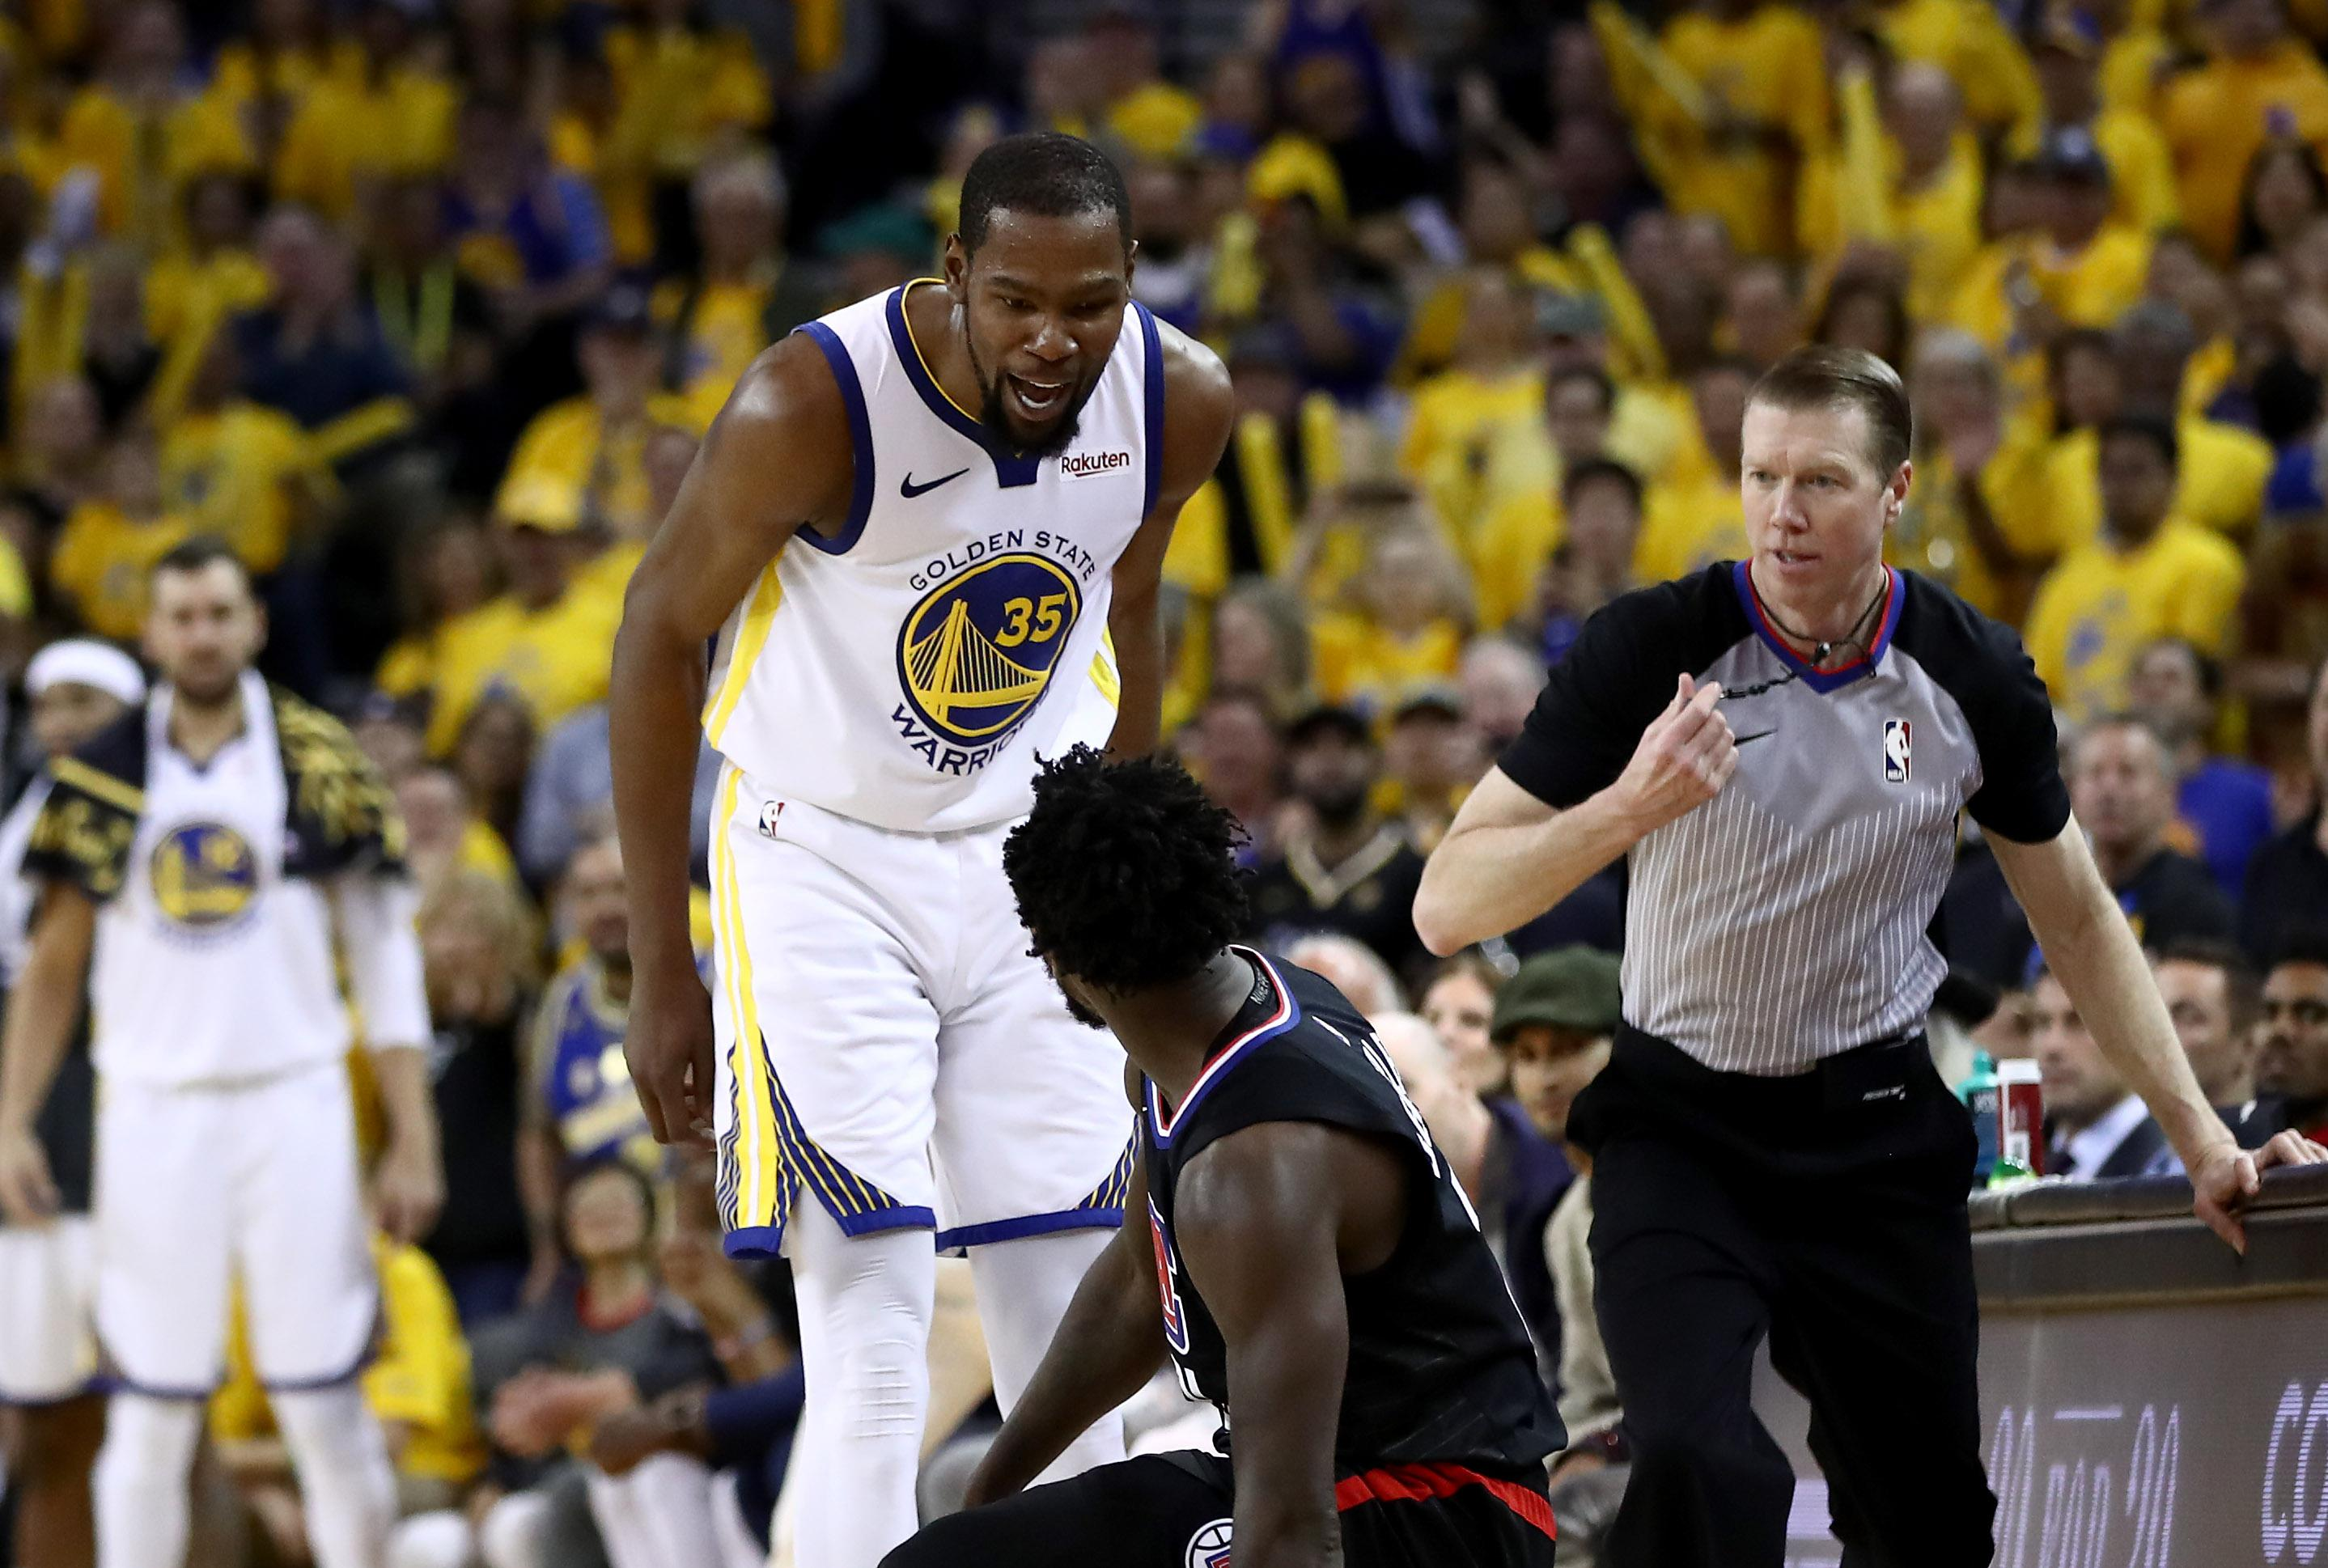 Kevin Durant stands over Patrick Beverley, who has fallen on the court. A ref moves to intervene.